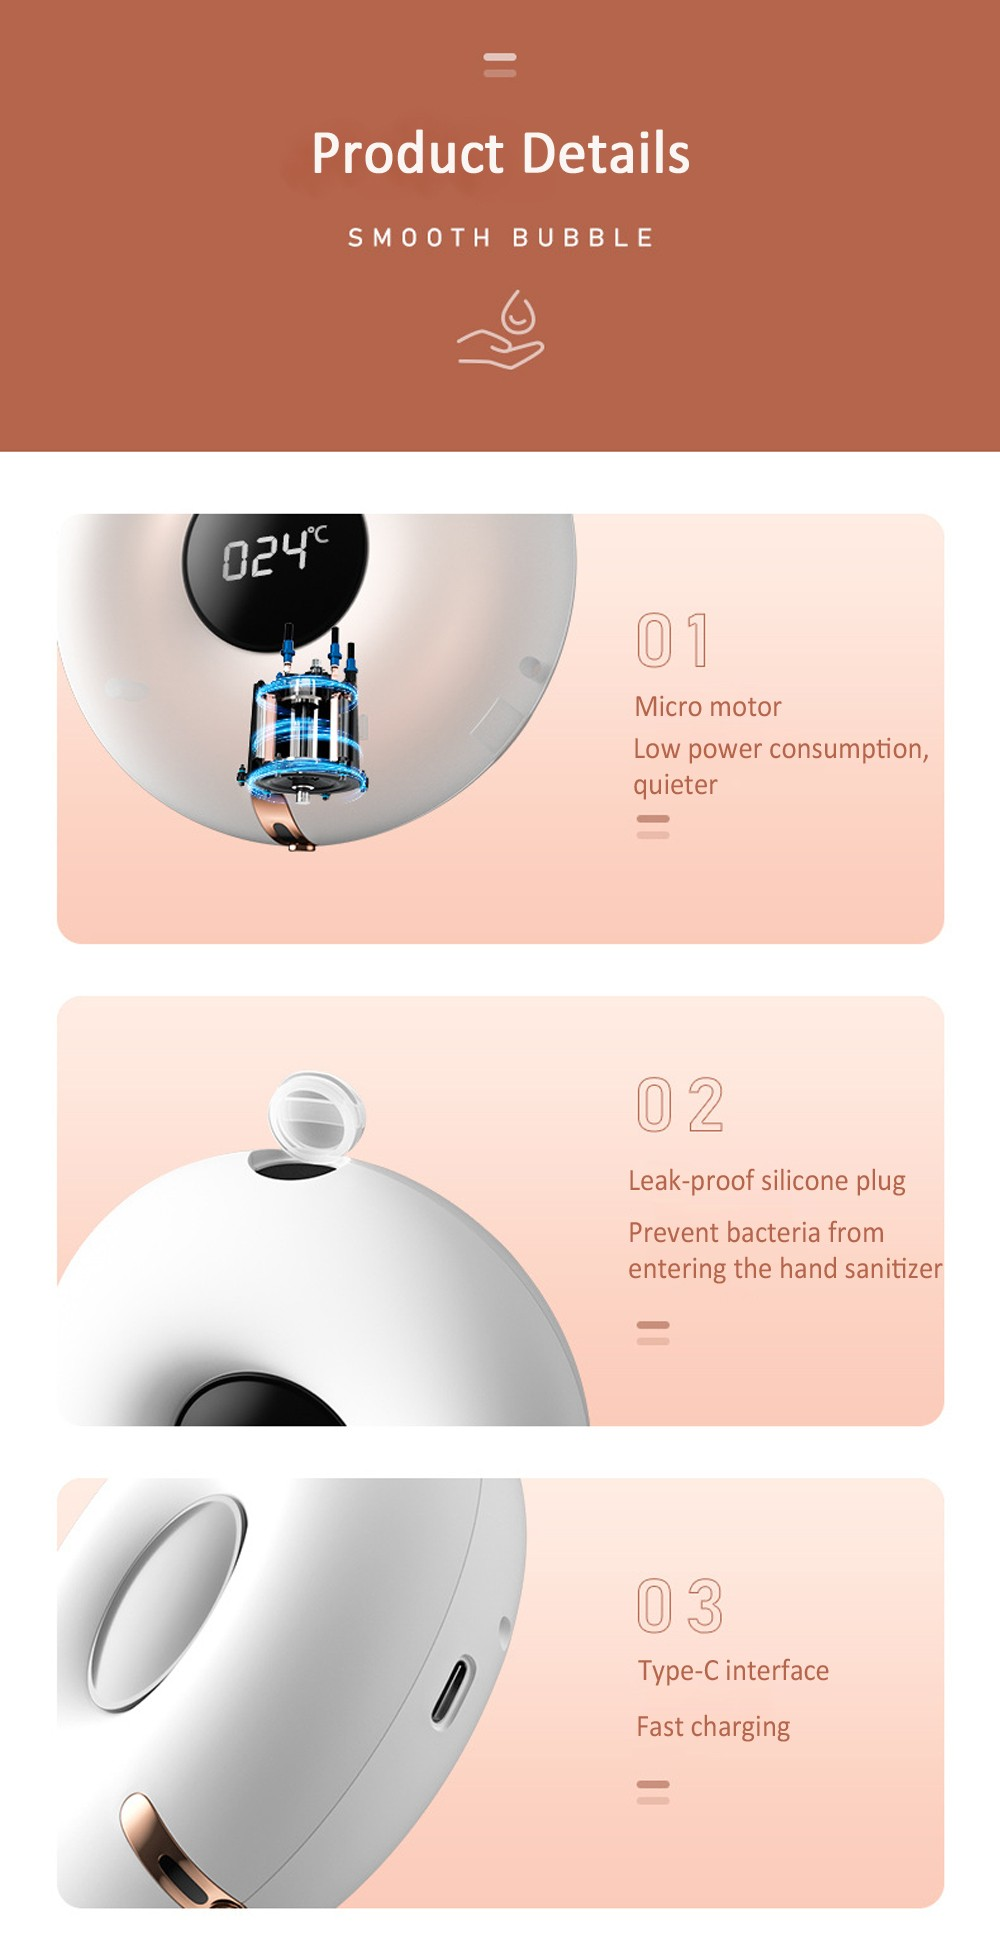 Z04 Wall Mounted Automatic Soap Dispenser Infrared Induction LED Display Temperature Foam Hand Sanitizer Disinfector - White